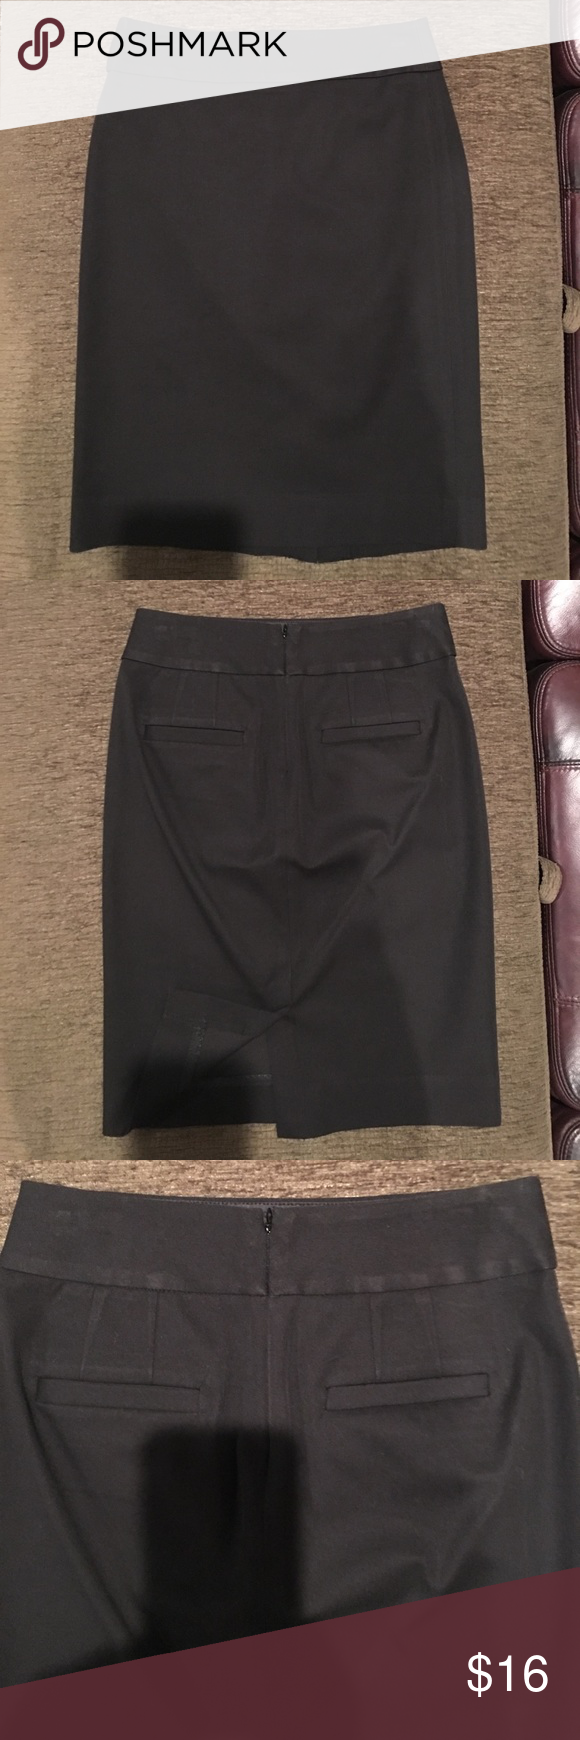 """Banana Republic Sloan Pencil Skirt Black 2 Gorgeous banana republic skirt Sloan style. Size 2. Black. Great condition. Worn 2 times and dry cleaned. Waist 28"""". Hips 35"""". Length 22"""". Banana Republic Skirts Pencil"""